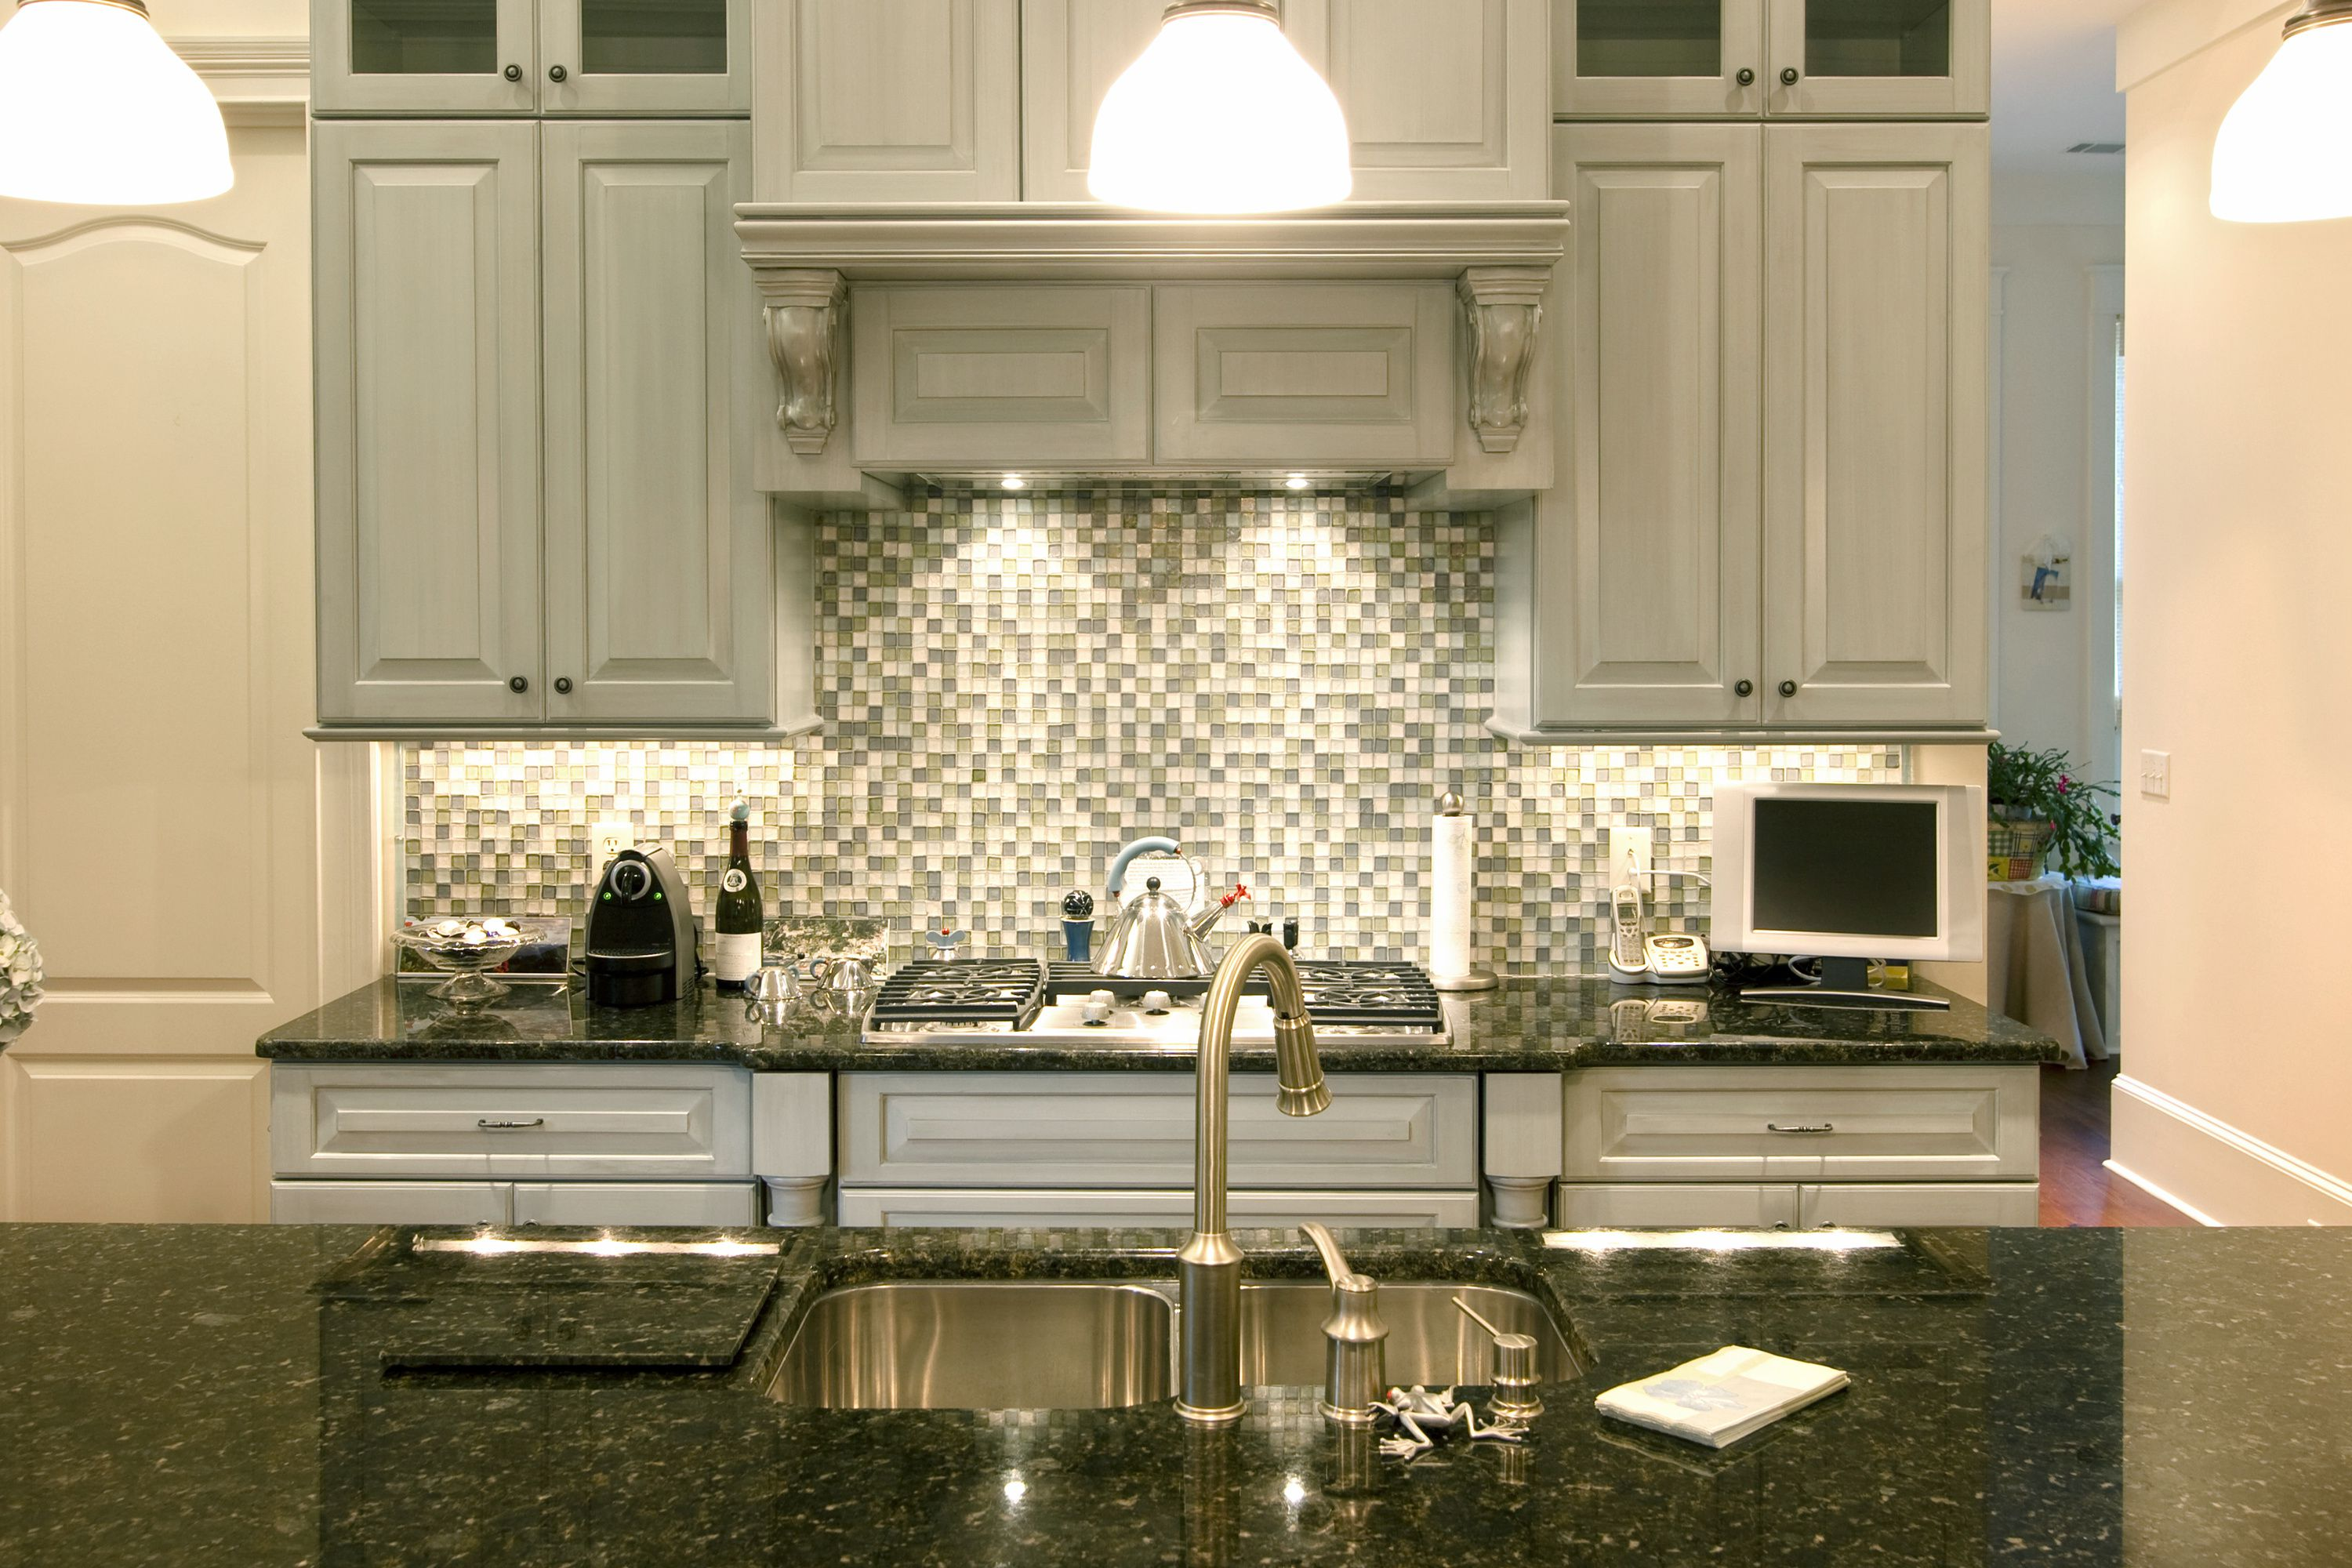 Exceptionnel Great Backsplash In White And Grey Tones To Meet Grey Kitchen Cabinet With  Black Top